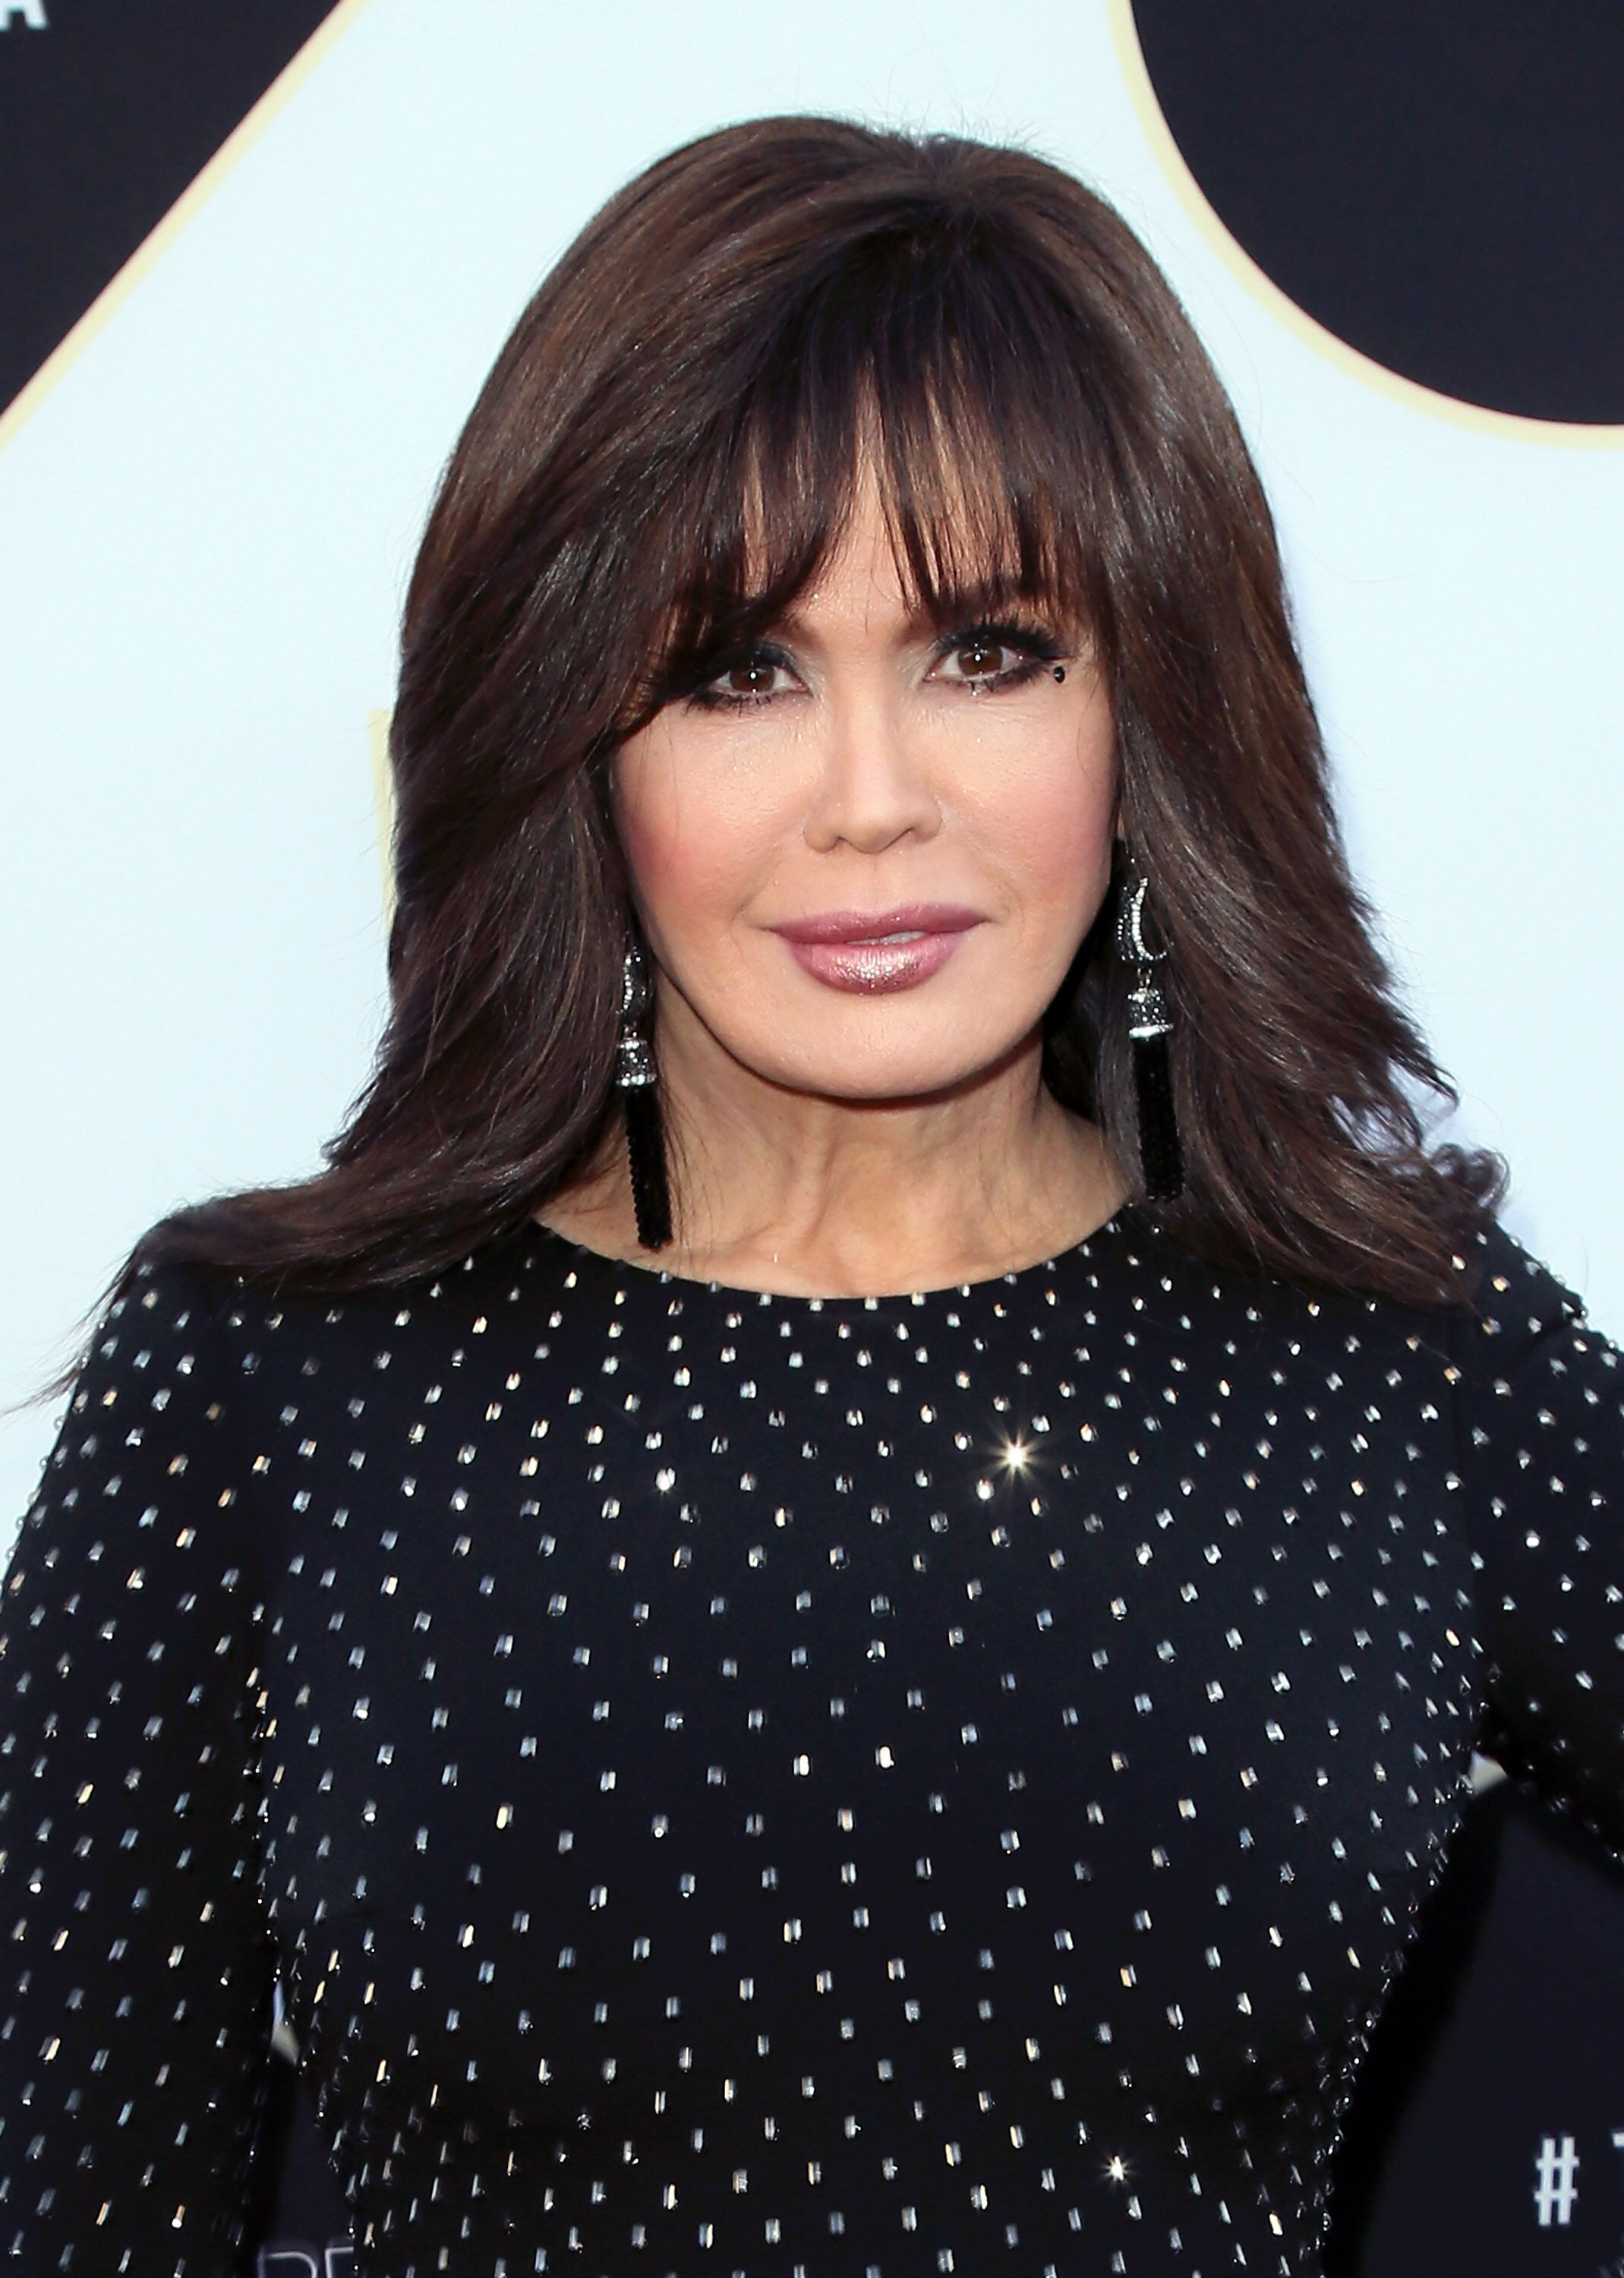 Singer Marie Osmond attends the 2015 TV Land Awards at the Saban Theatre  | Getty Images